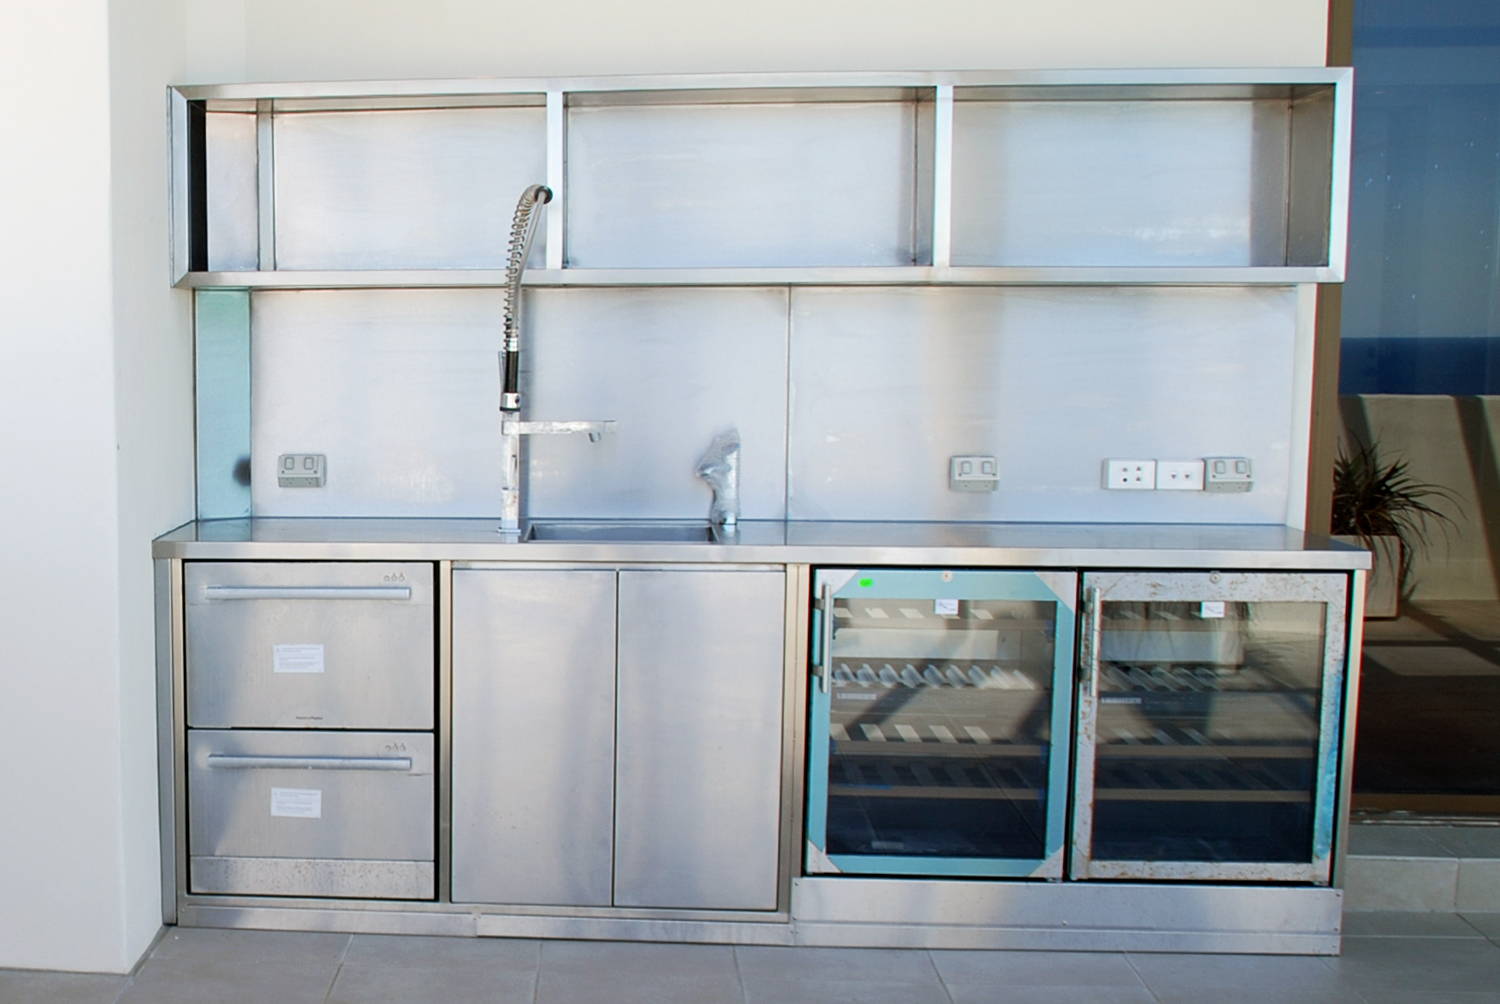 Residential stainless outdoor kitchens and benches